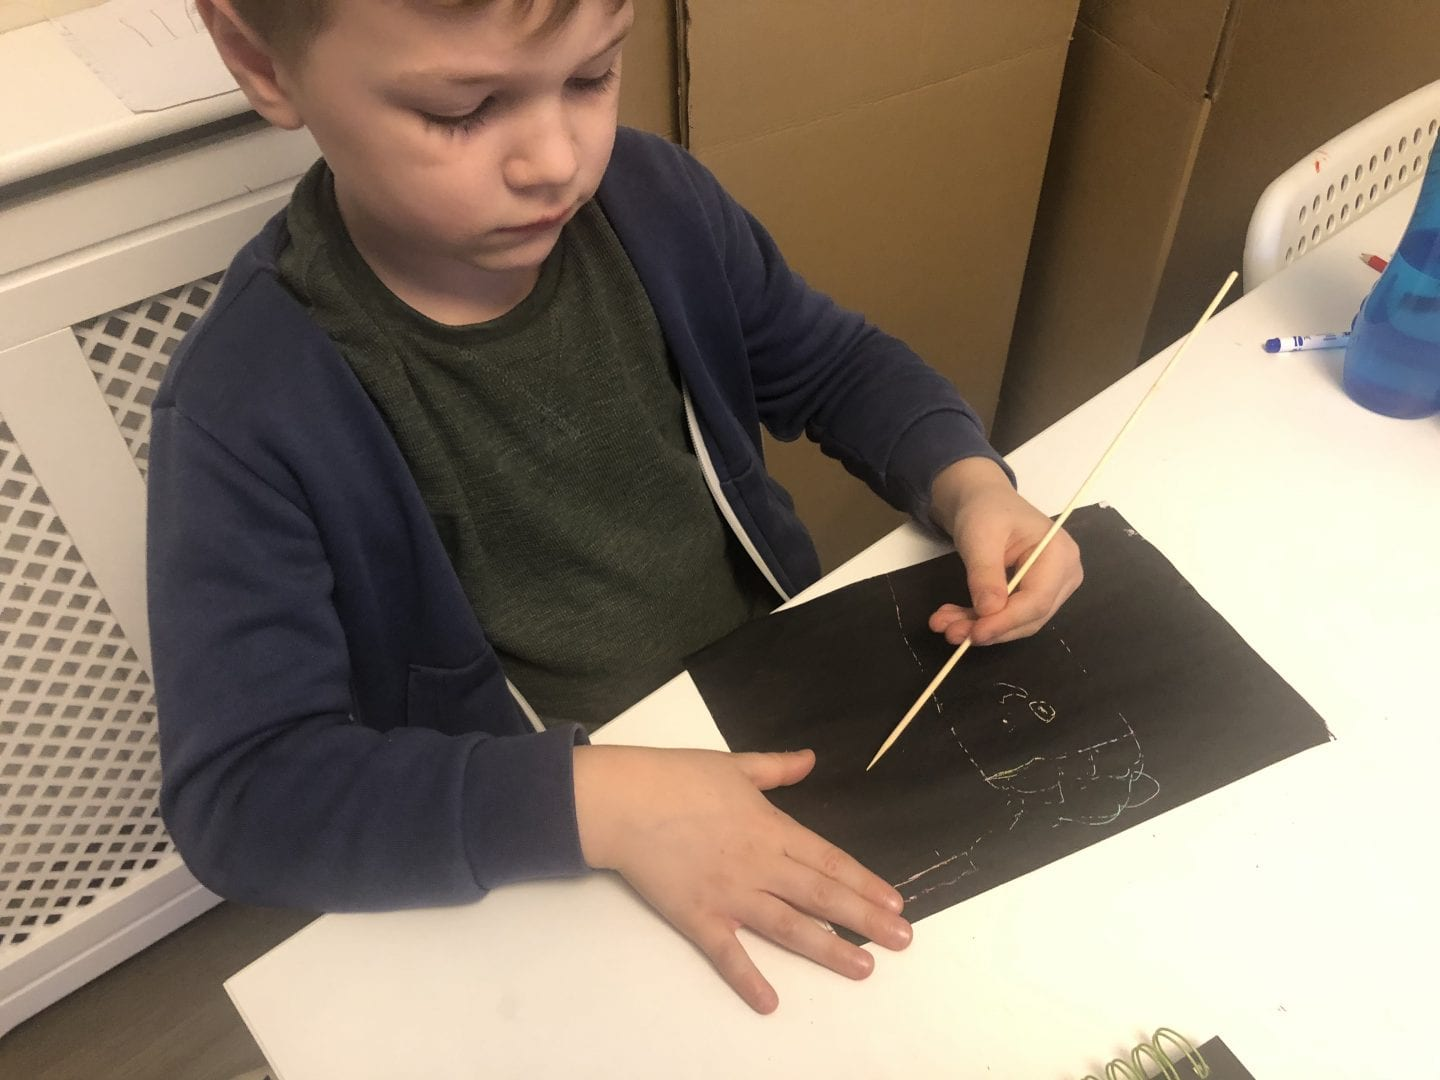 Young boy using a wooden skewer to create his scratch art